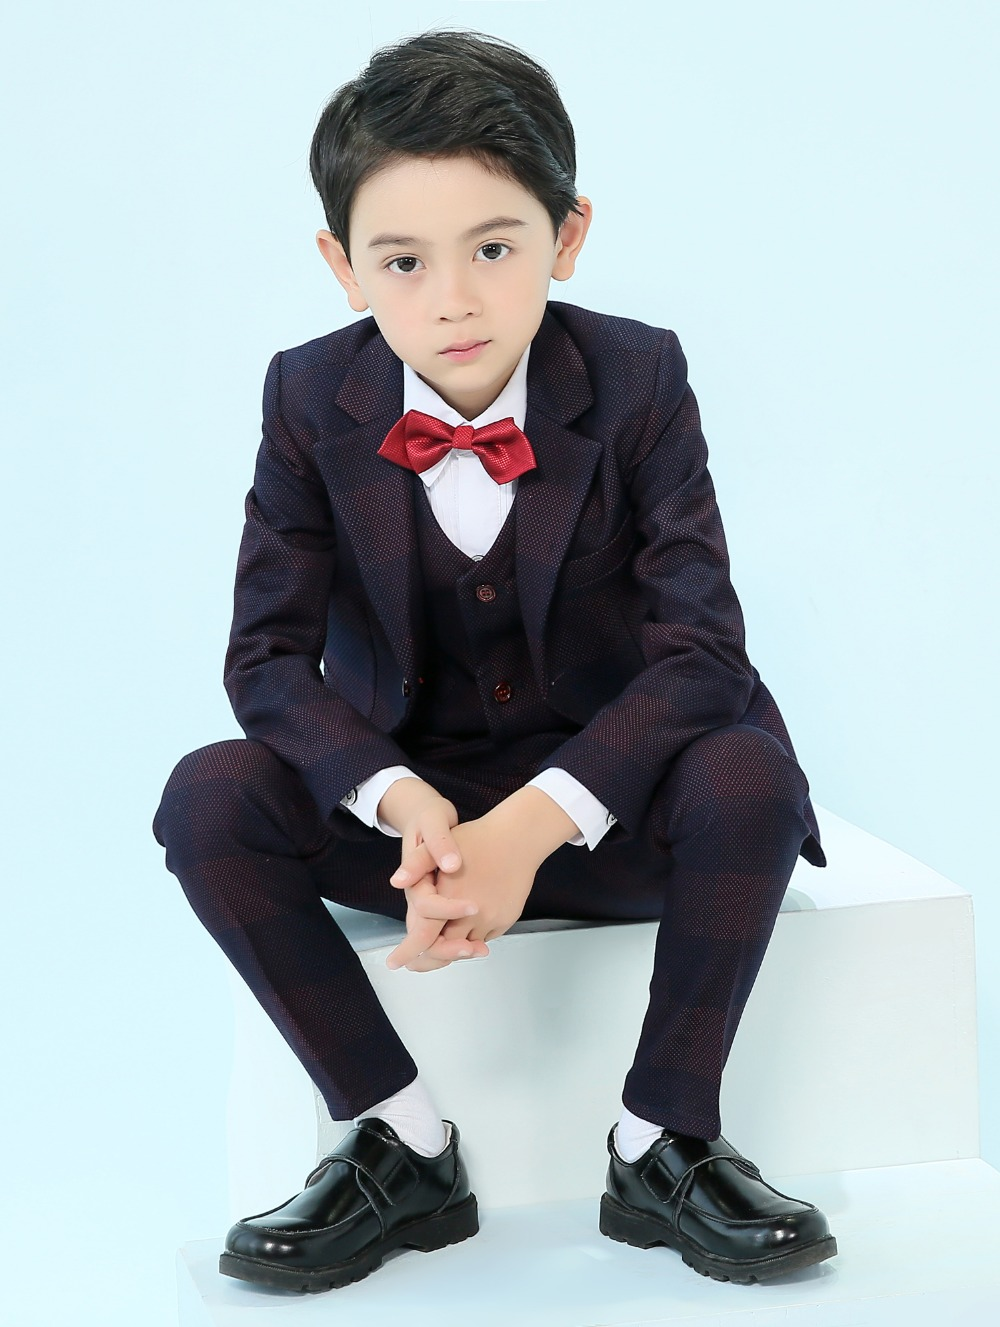 67155cd49 Us 89 99 5 Piece Boys Suits Plaid Slim Fit Ring Bearer Suit For Boys Formal  Classic Costume Weddings In Suits From Mother Kids On Aliexpress